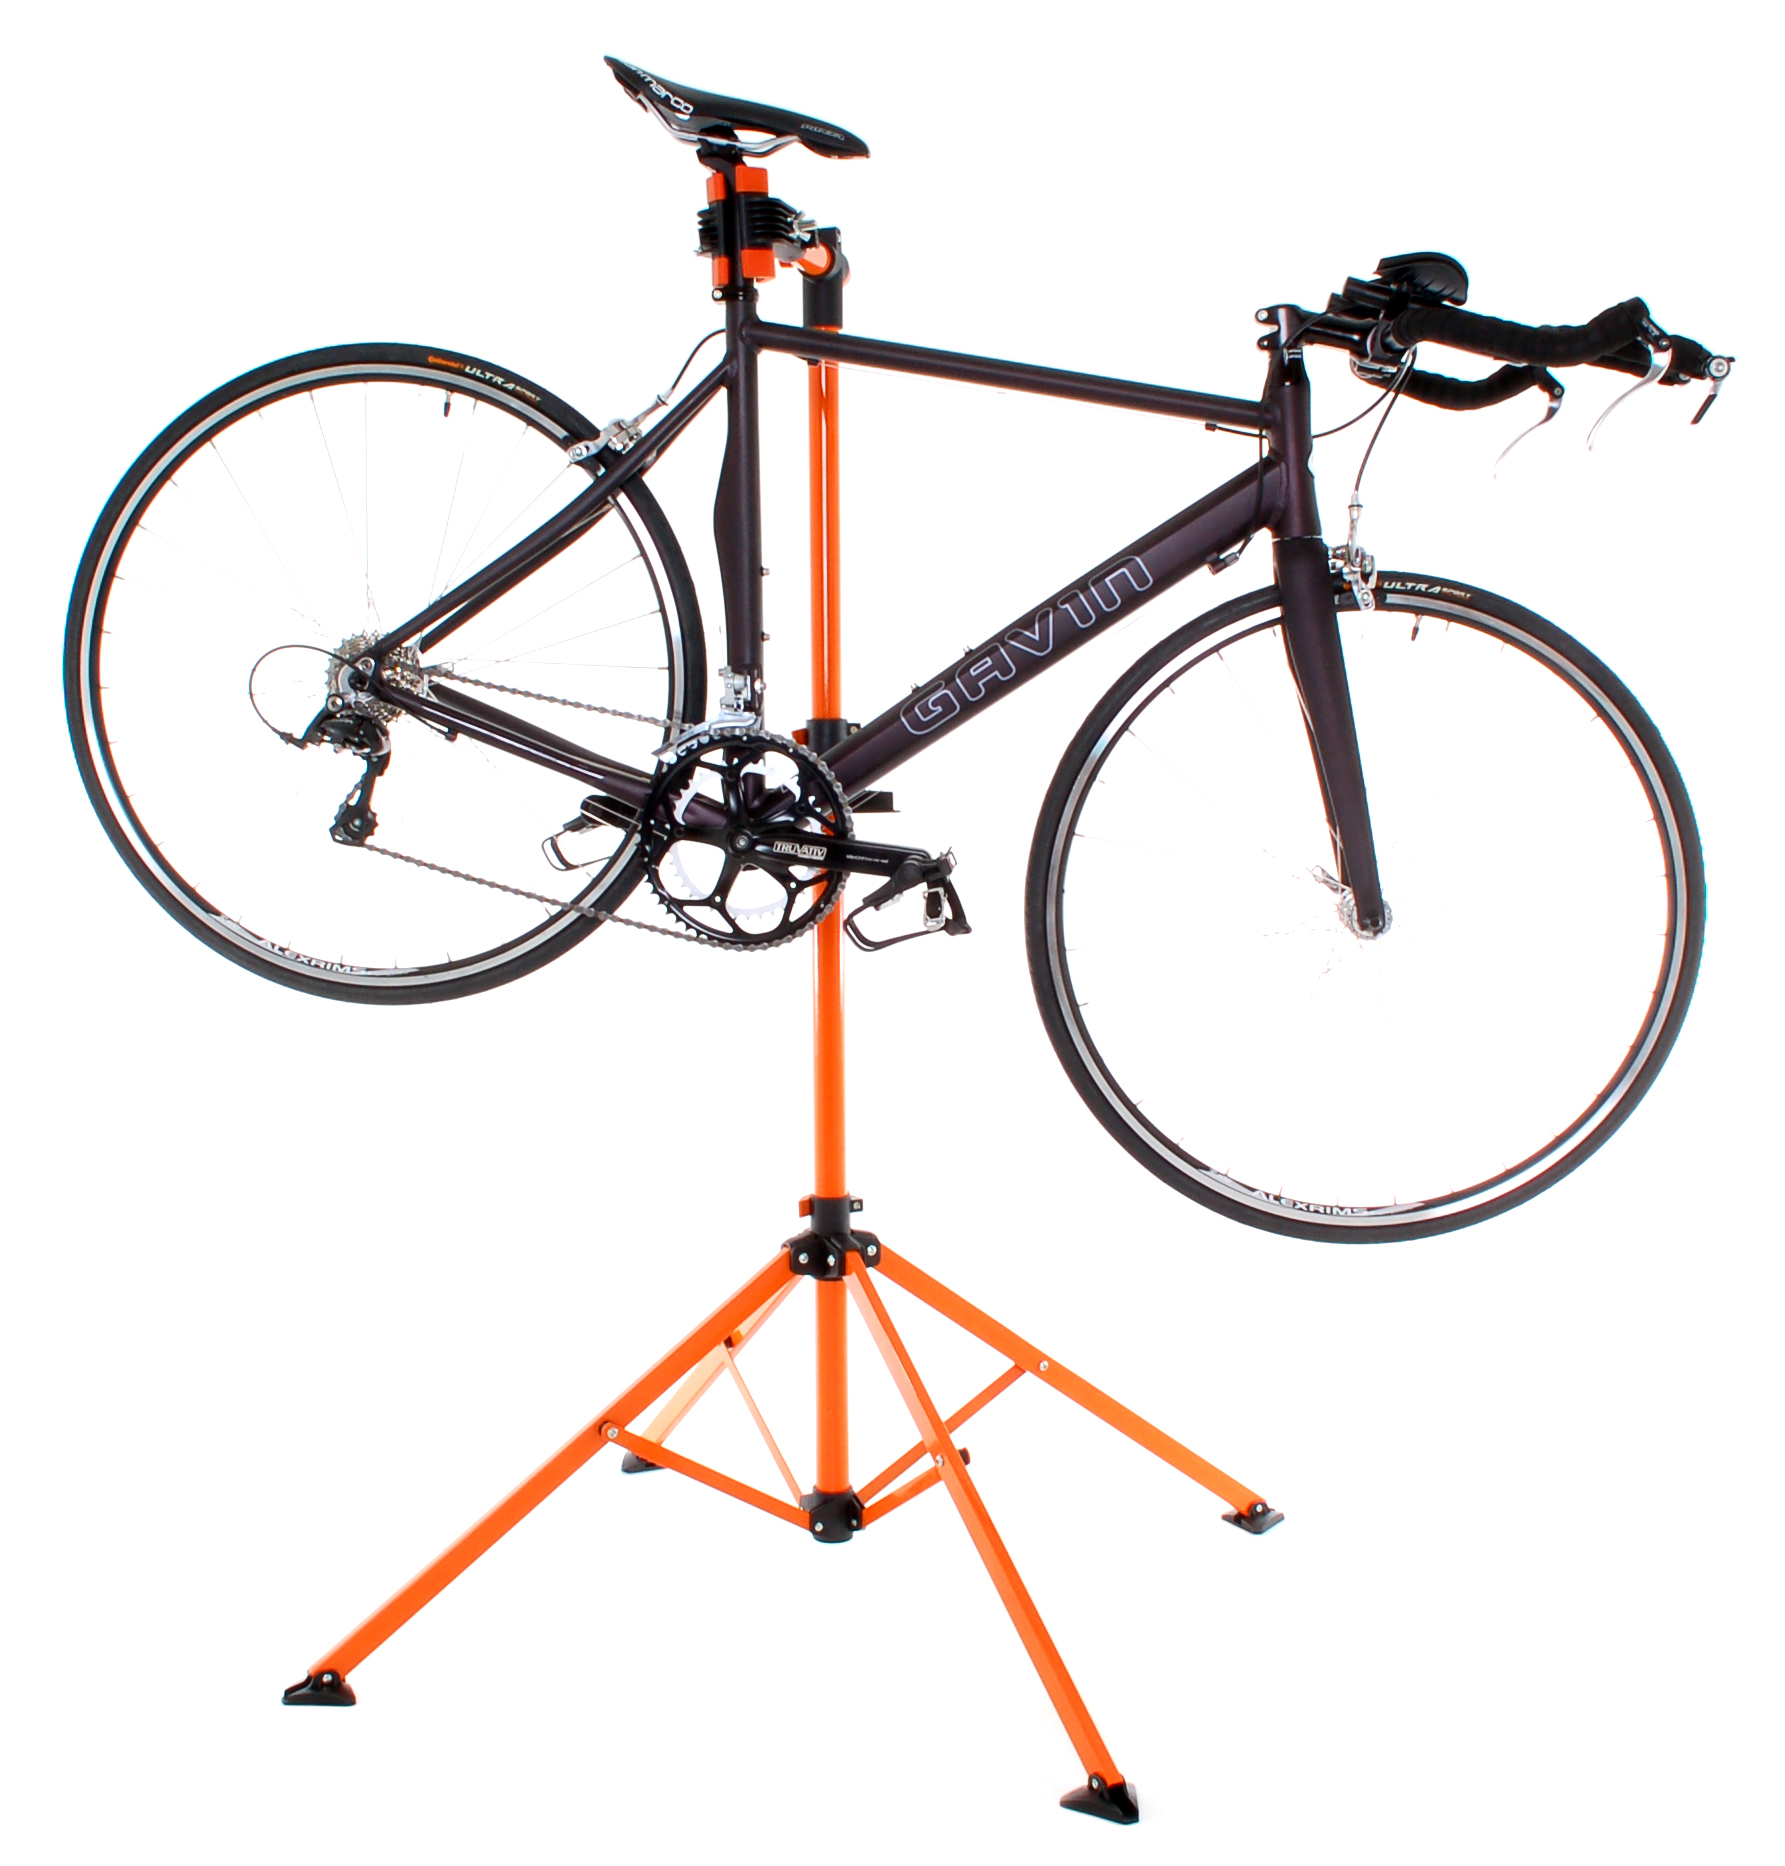 Conquer Portable Home Bike Repair Stand Adjustable Height